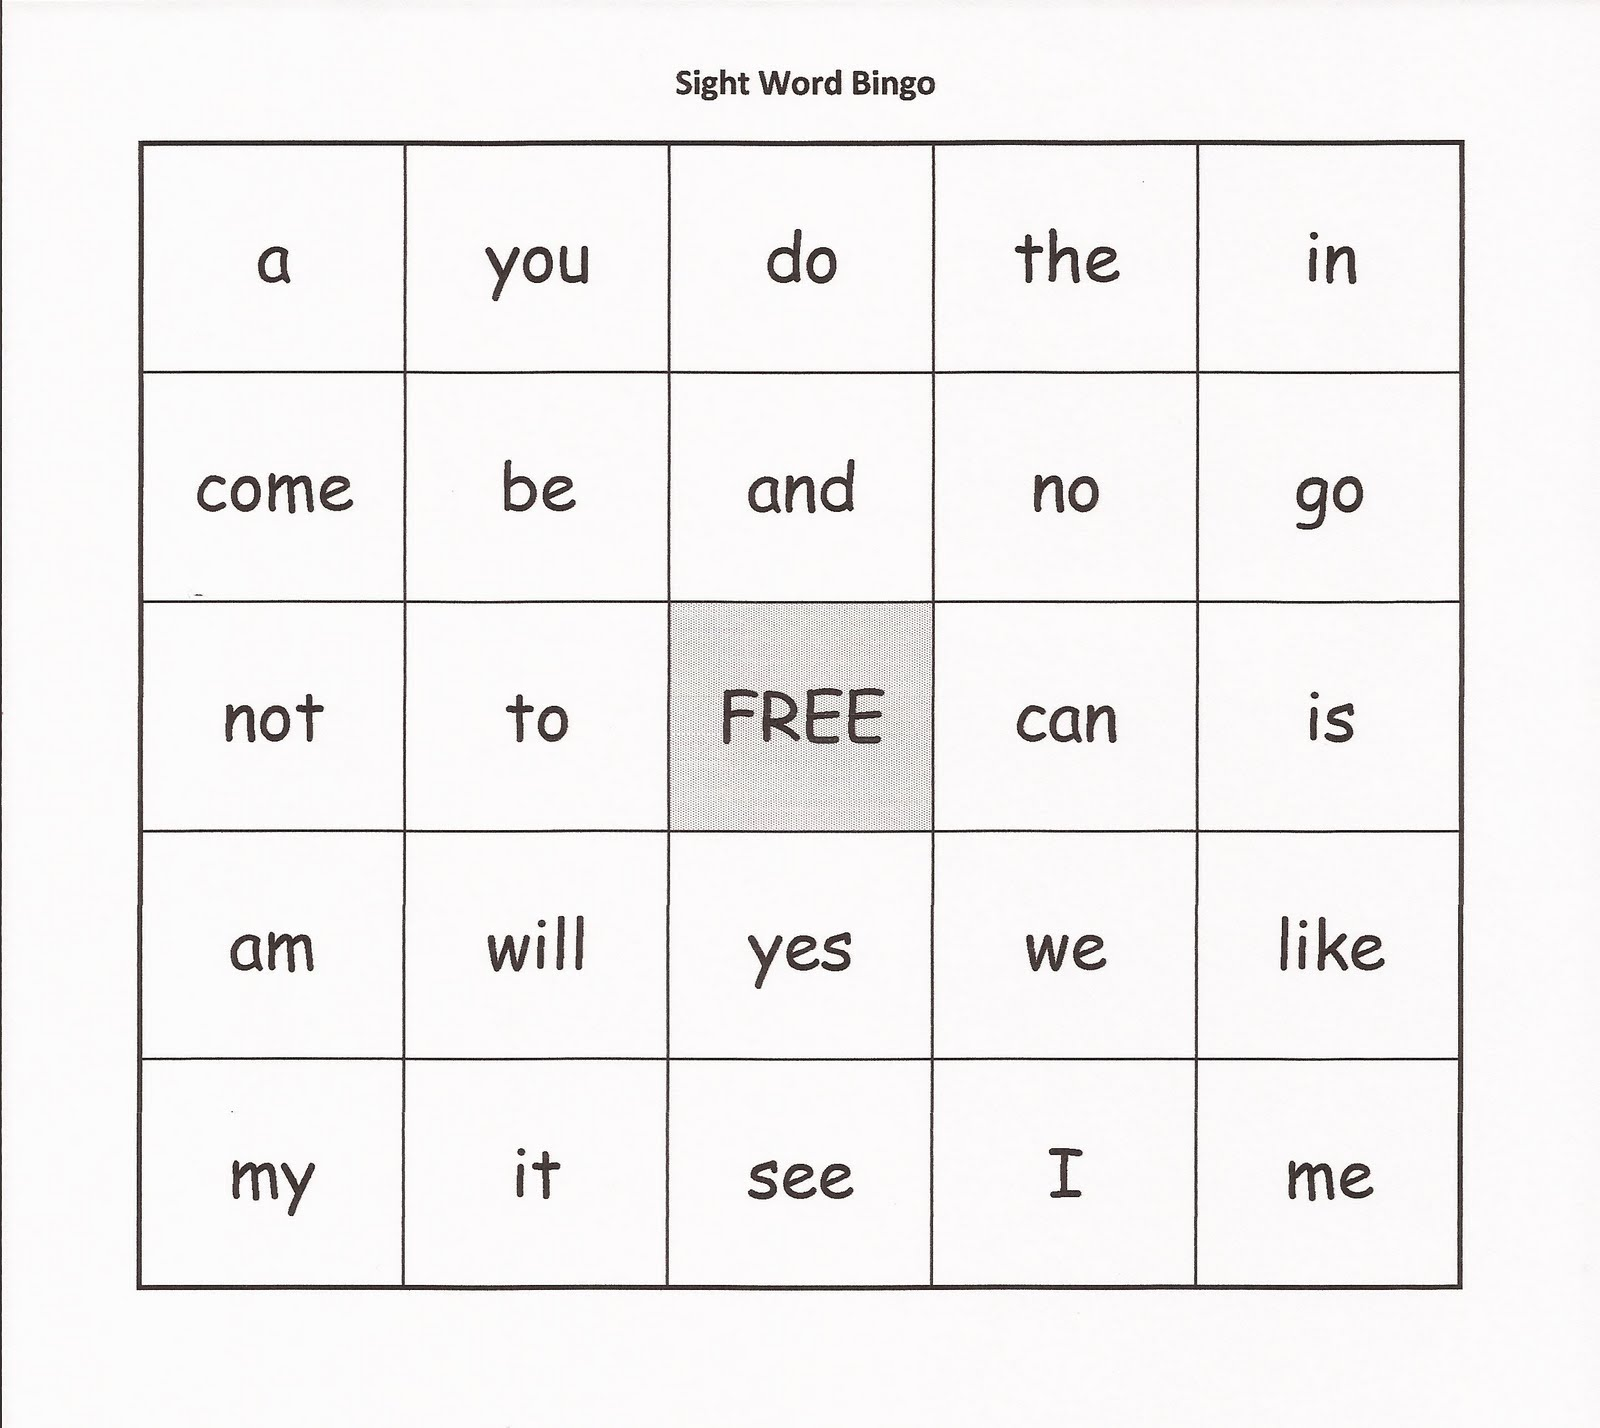 word  Sight book template sight Bingo Word